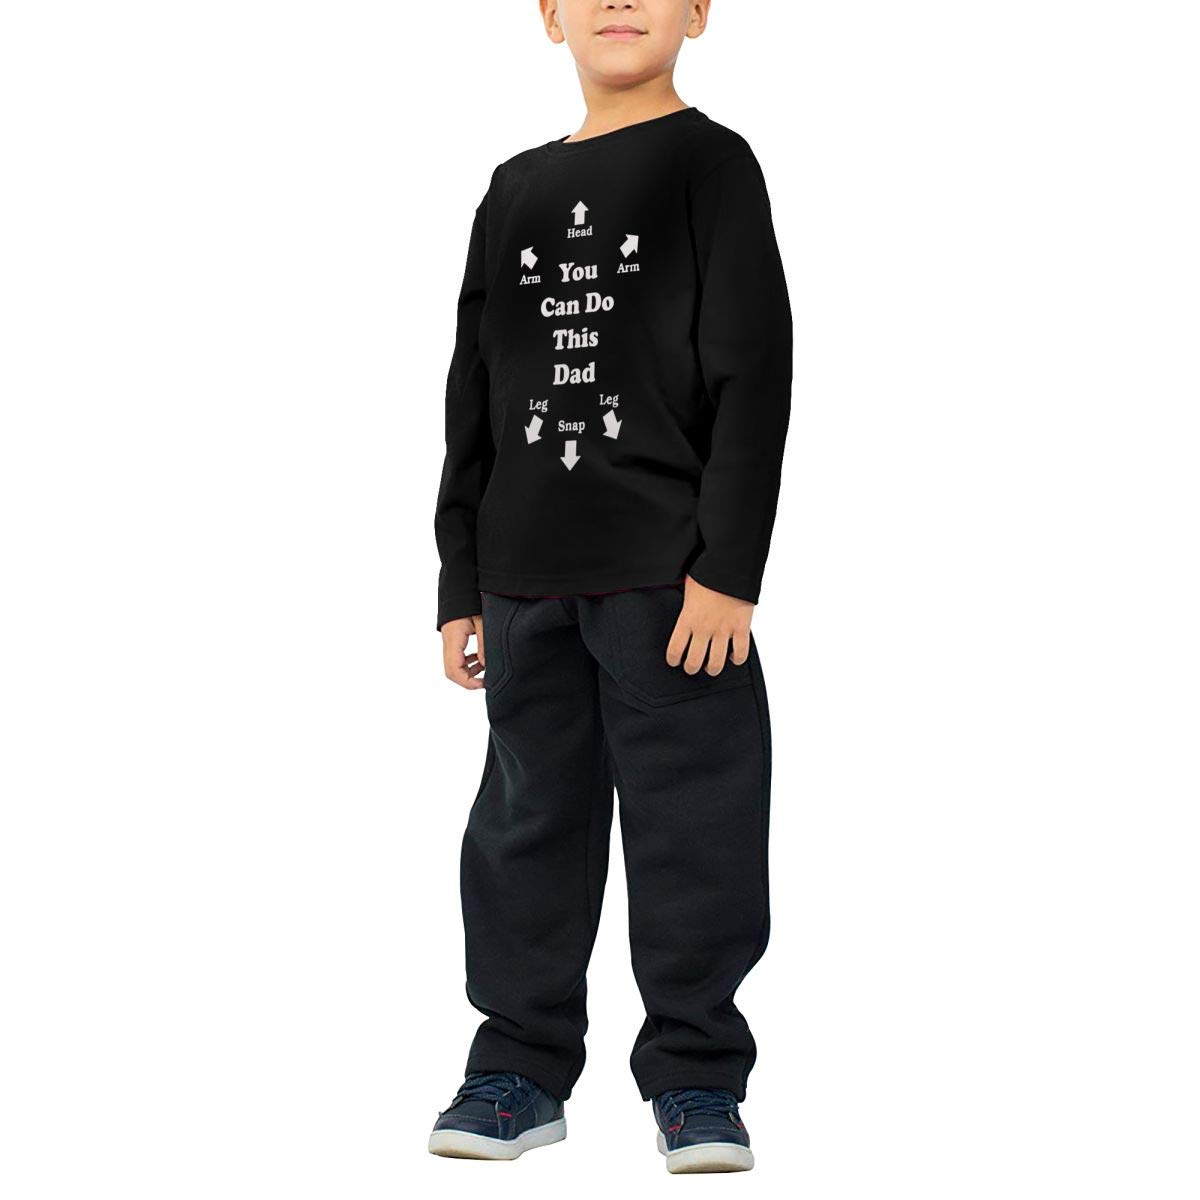 Rhfjgk Ldjg You Can Do This Dad Youth Boy Long Sleeve Tops Cotton